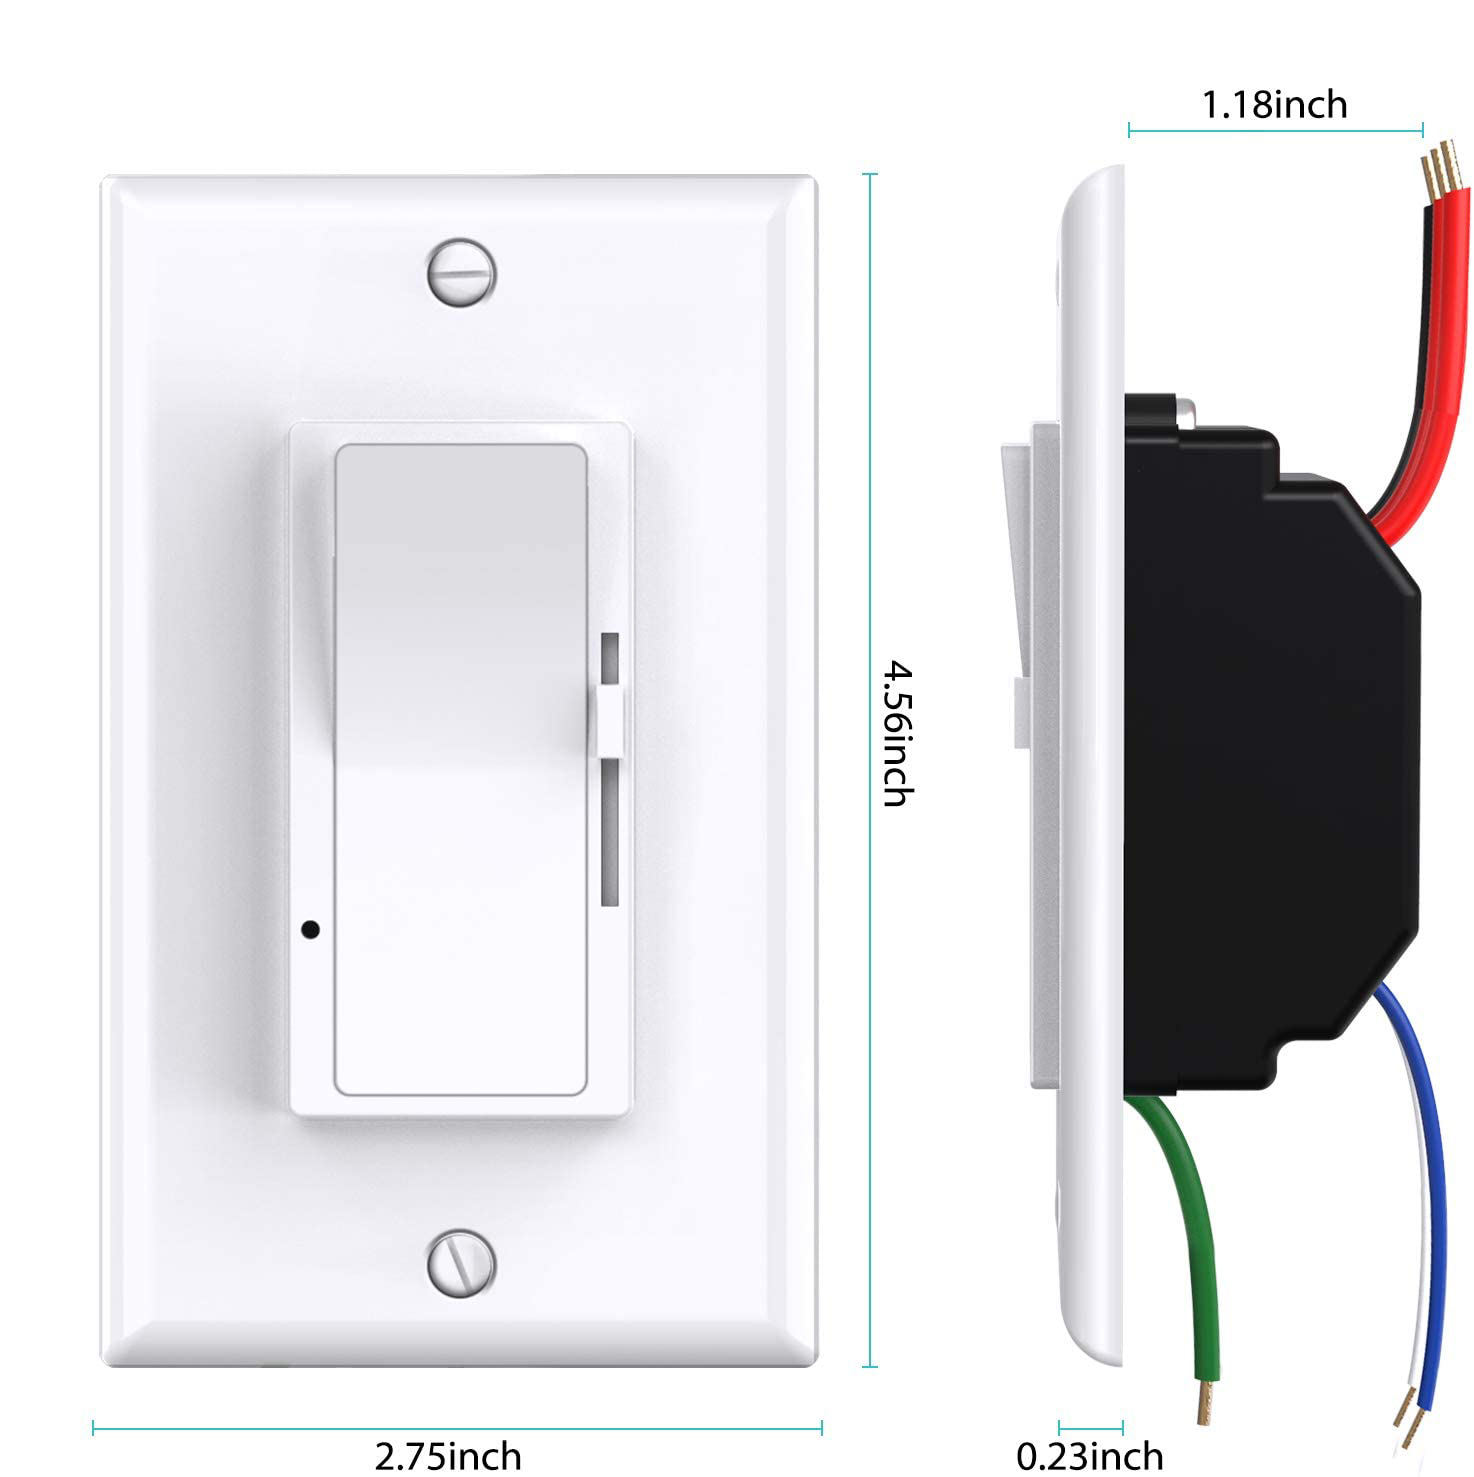 USA Standard High Quality 3-Way LED Triac 110V Dimmer With Slide Switch